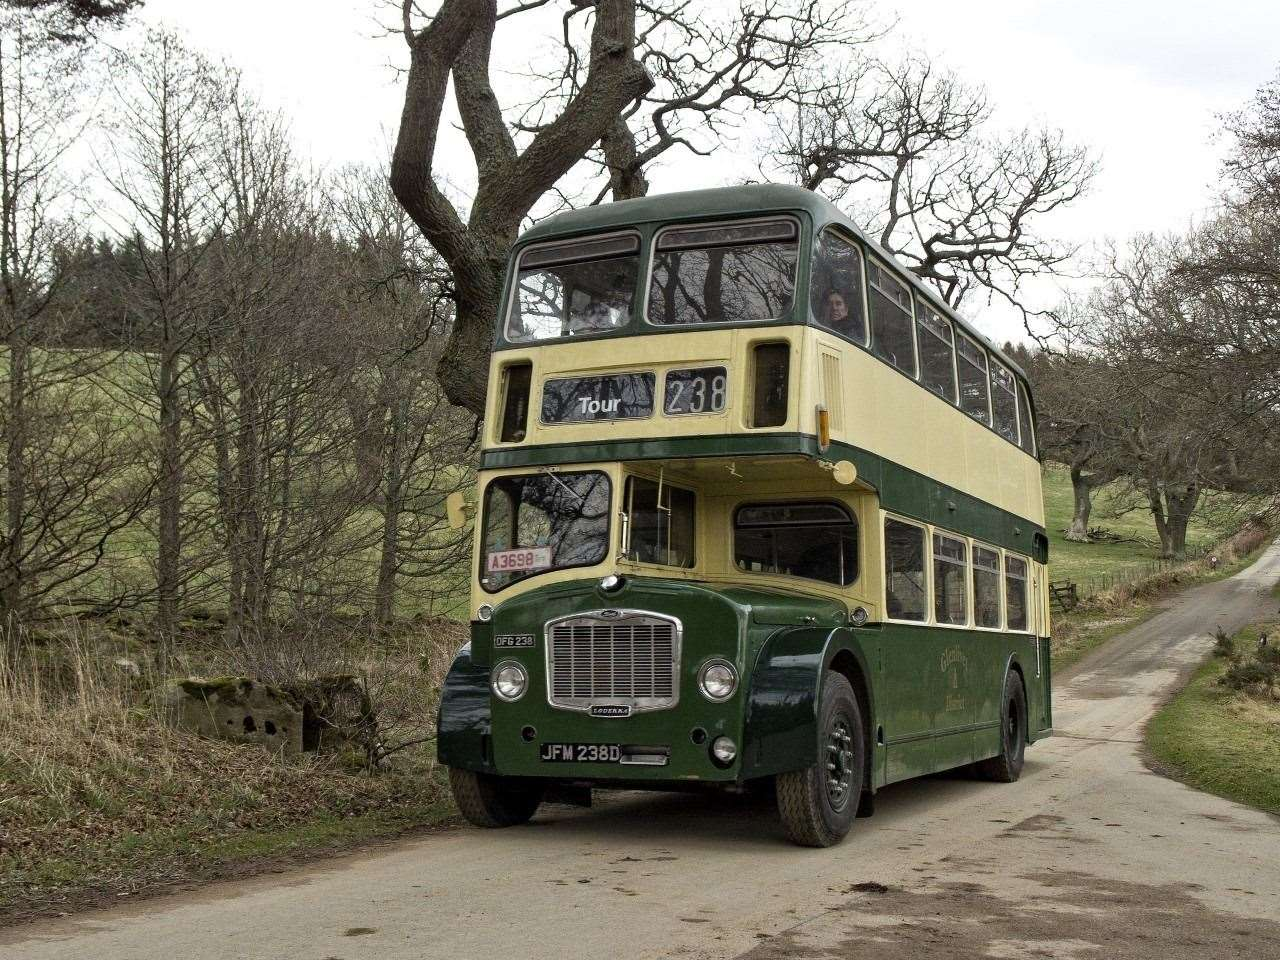 A 1960 Bristol Double Decker bus will undergo a full restoration thanks to the funding.